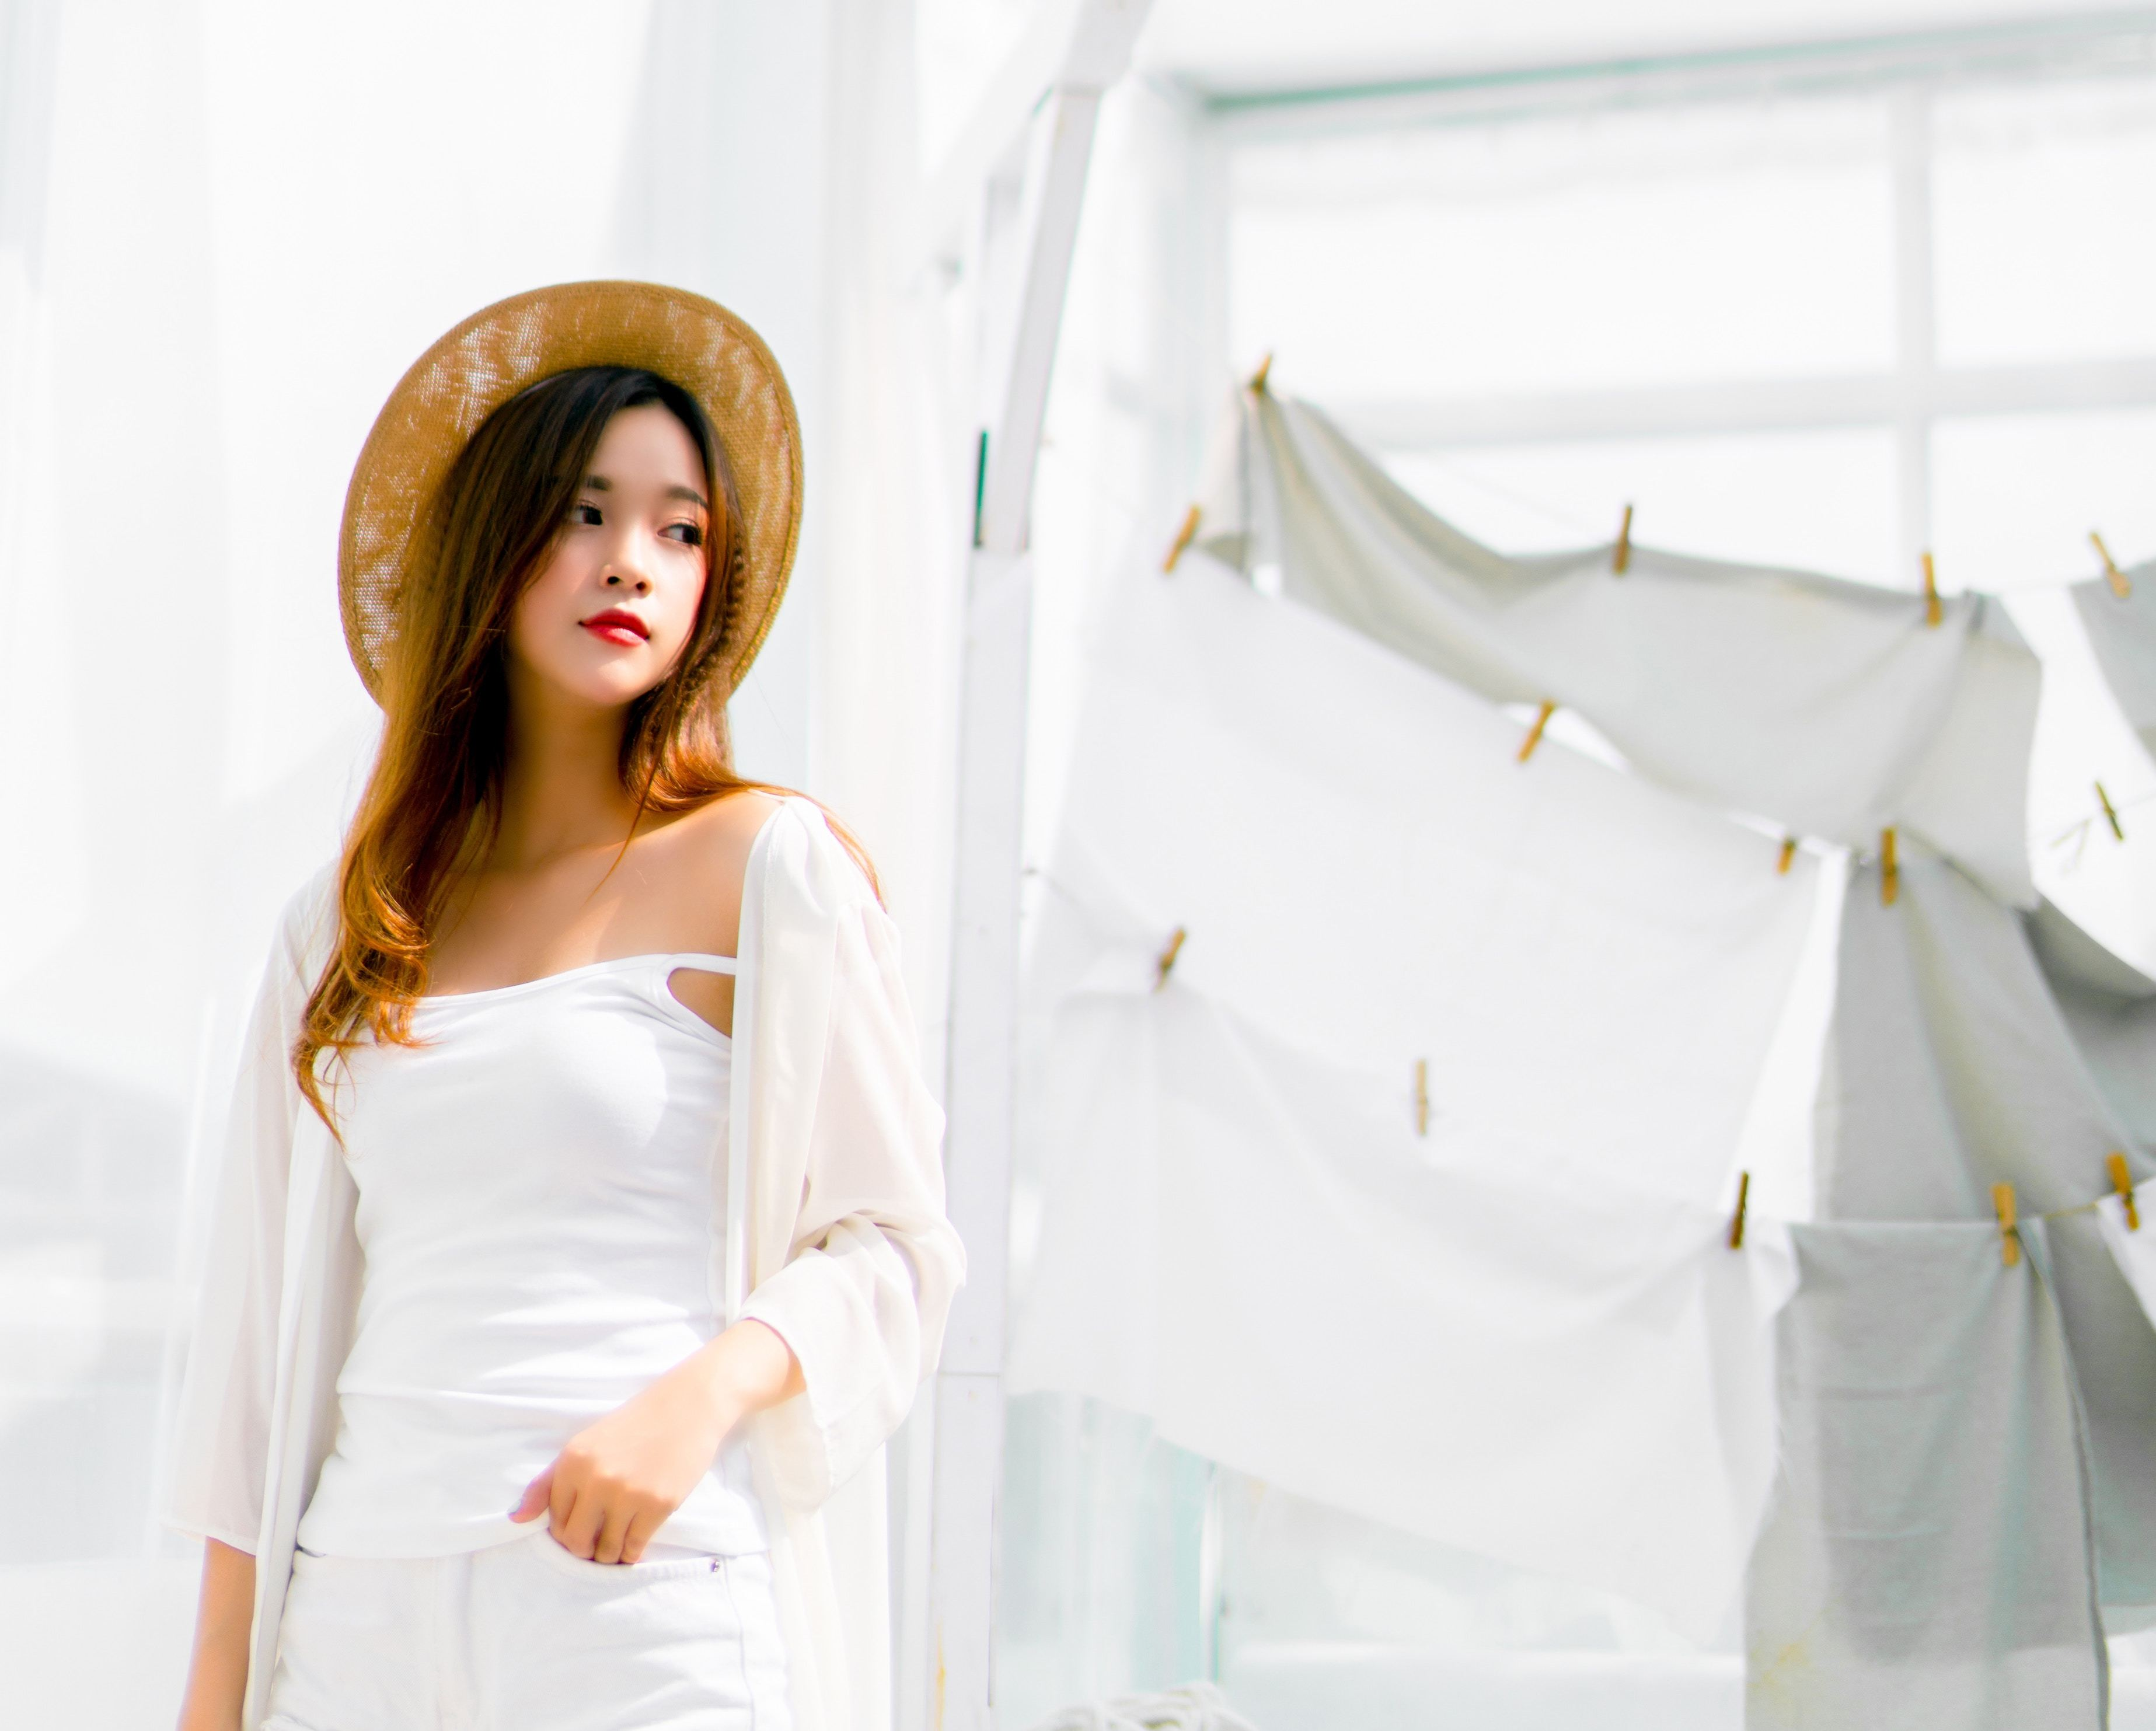 Asian girl dressed in white, on white background